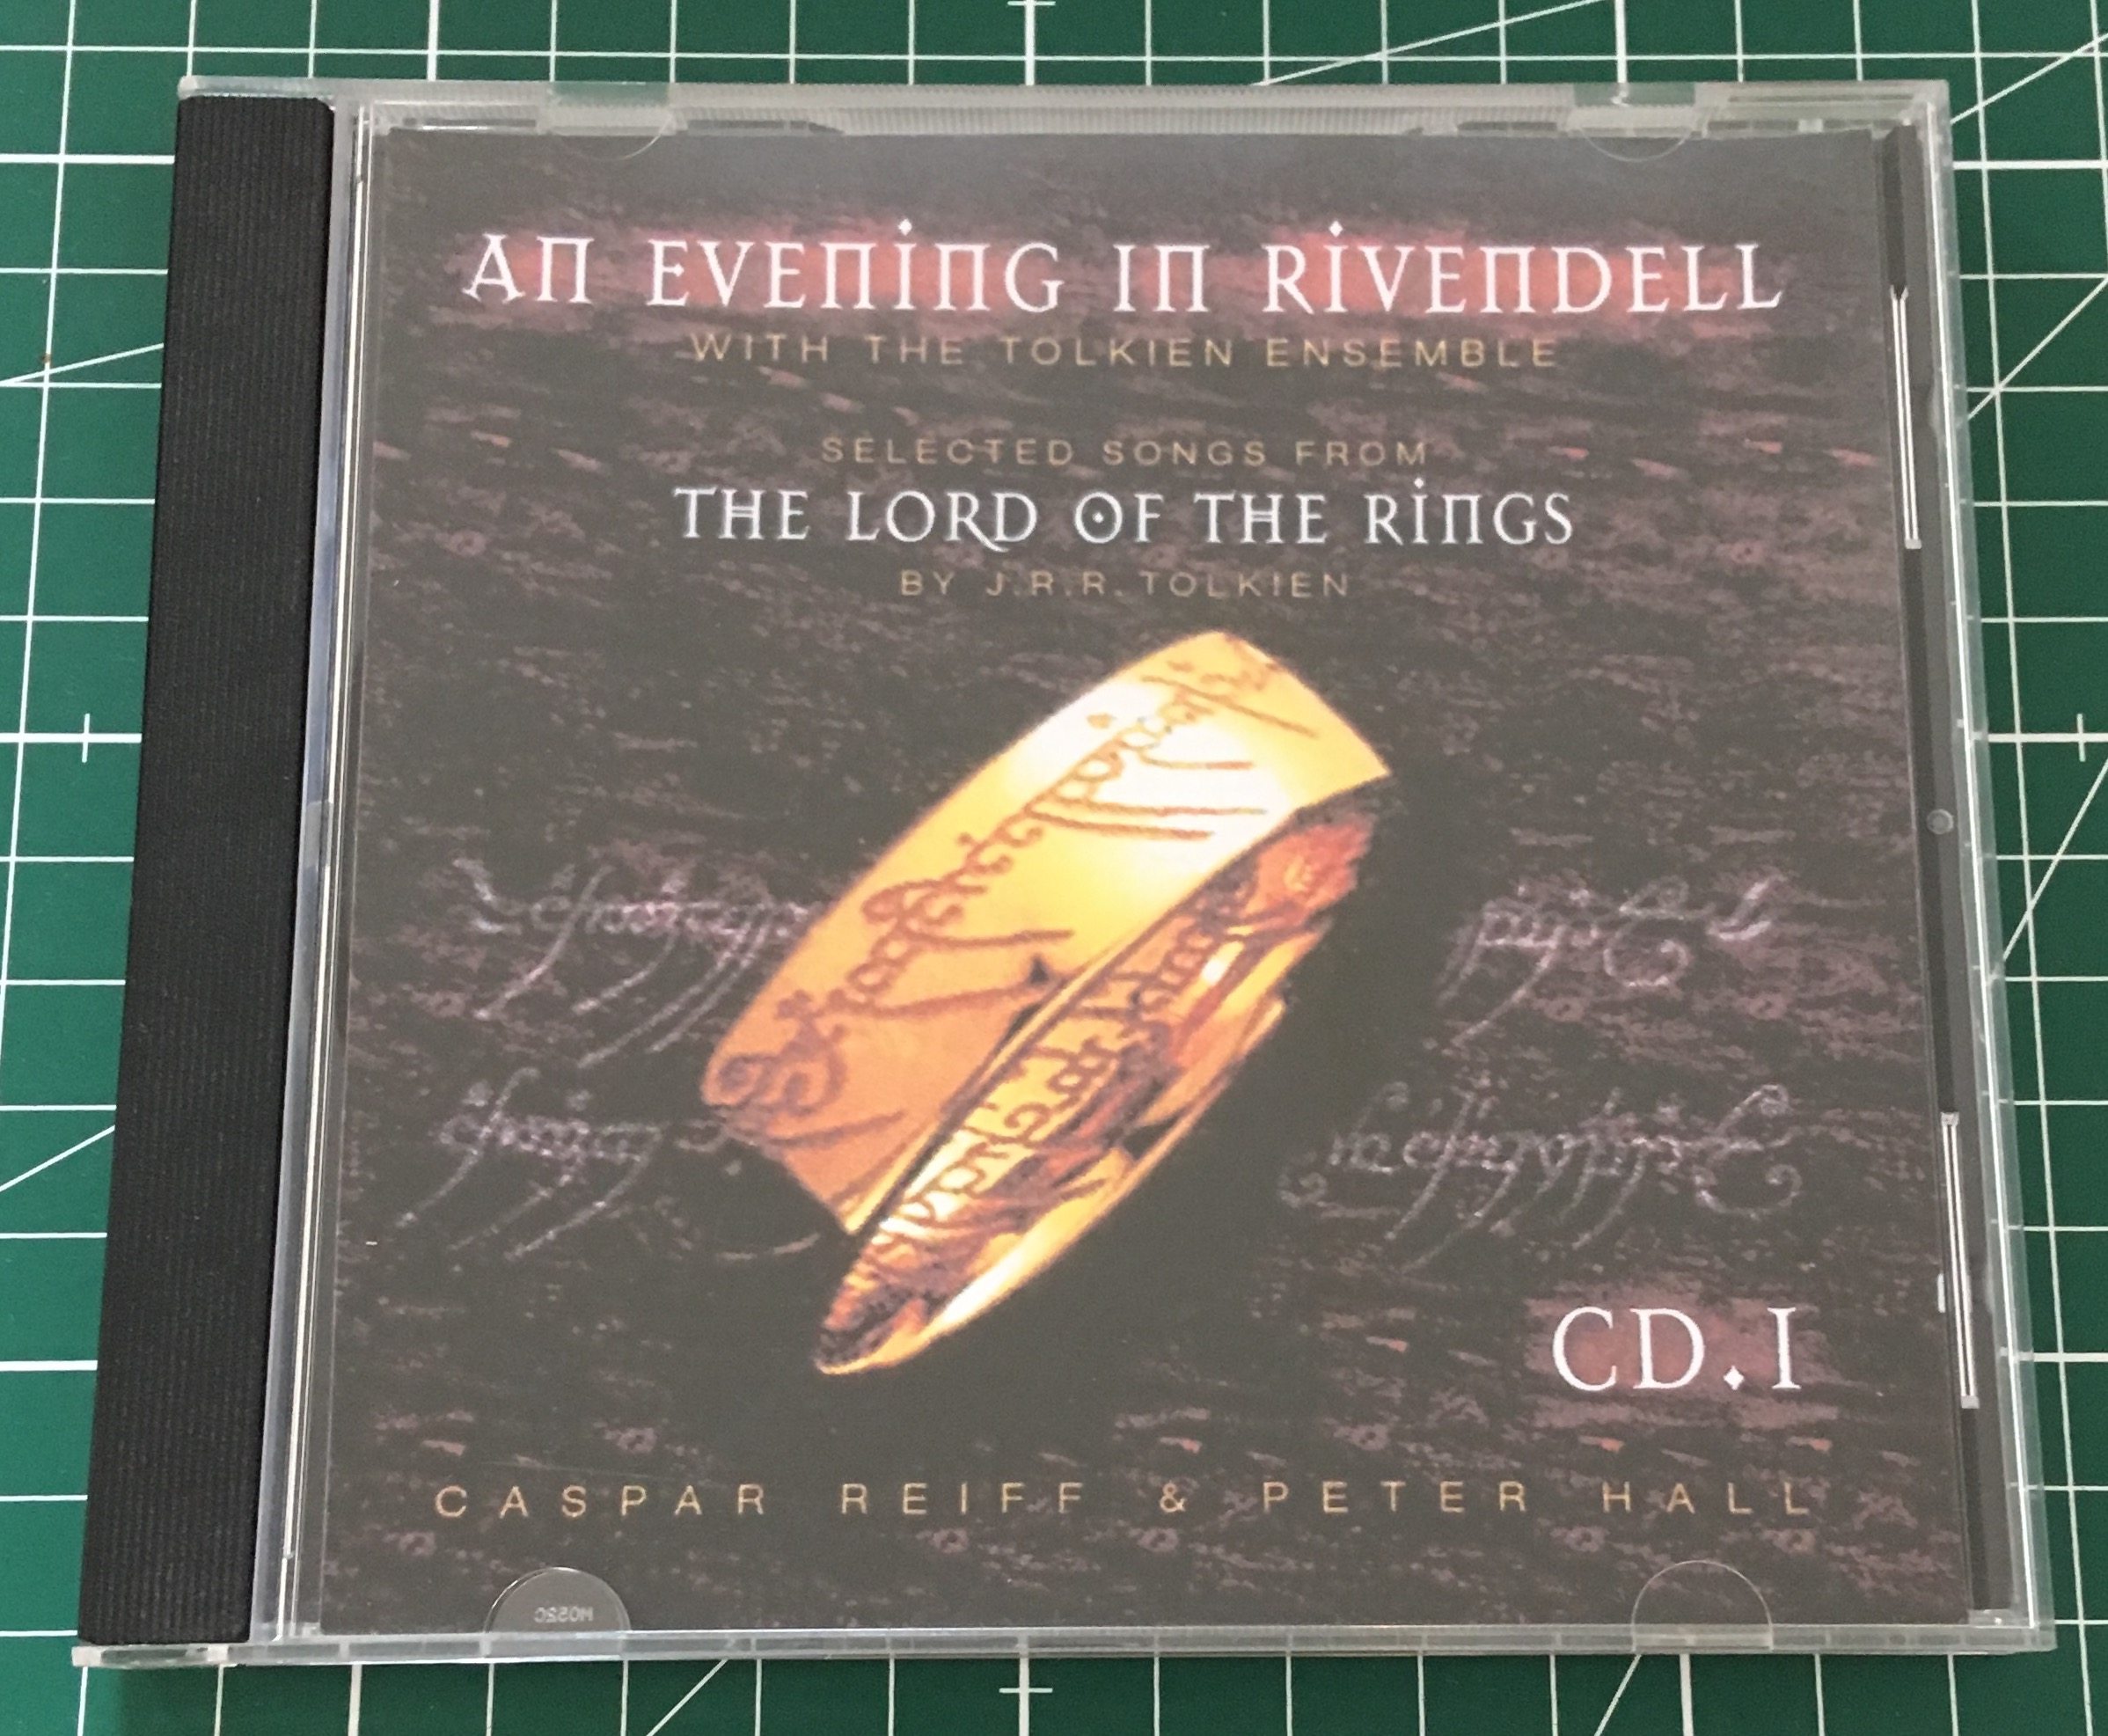 CD The Lord of the Rings-Songs kostenlos